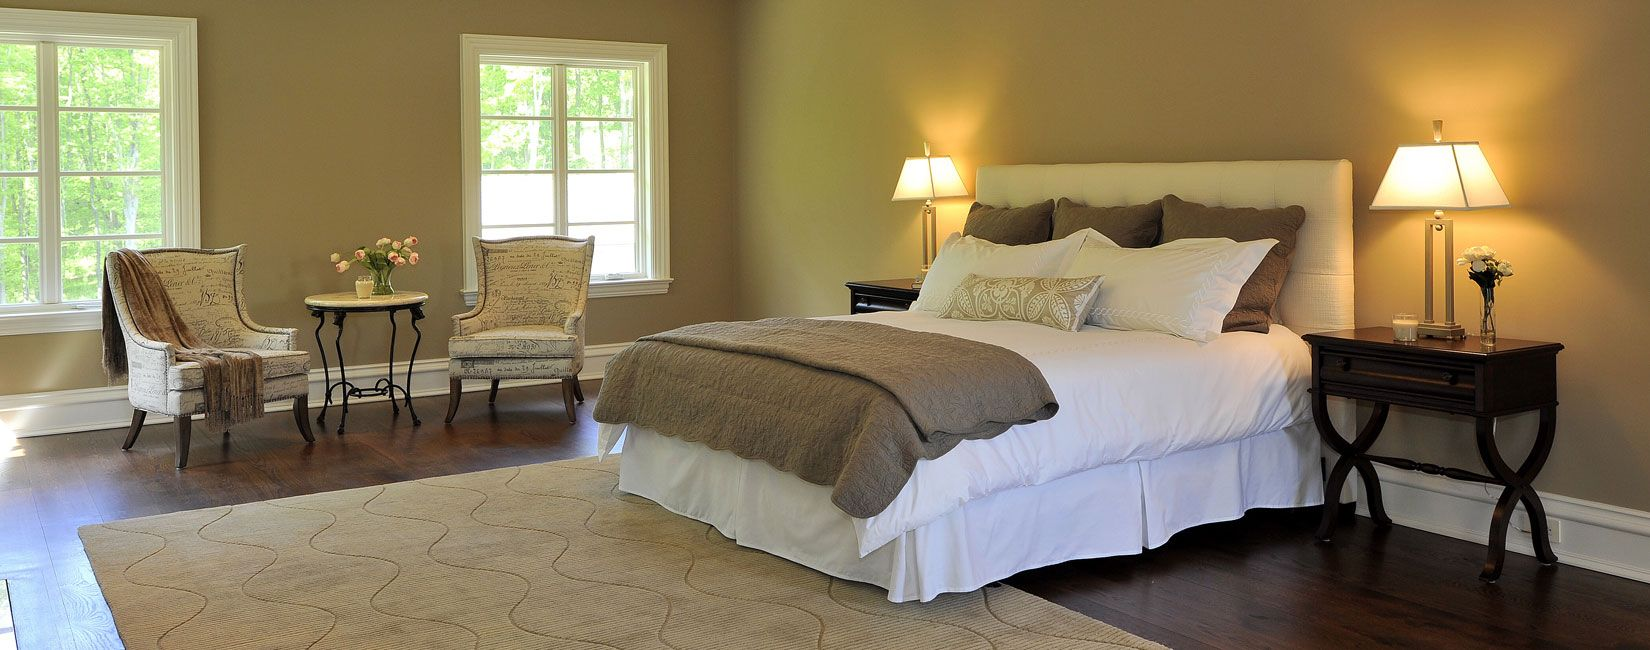 Pin by Shelly McGill on A. Home Staging and Designs I like